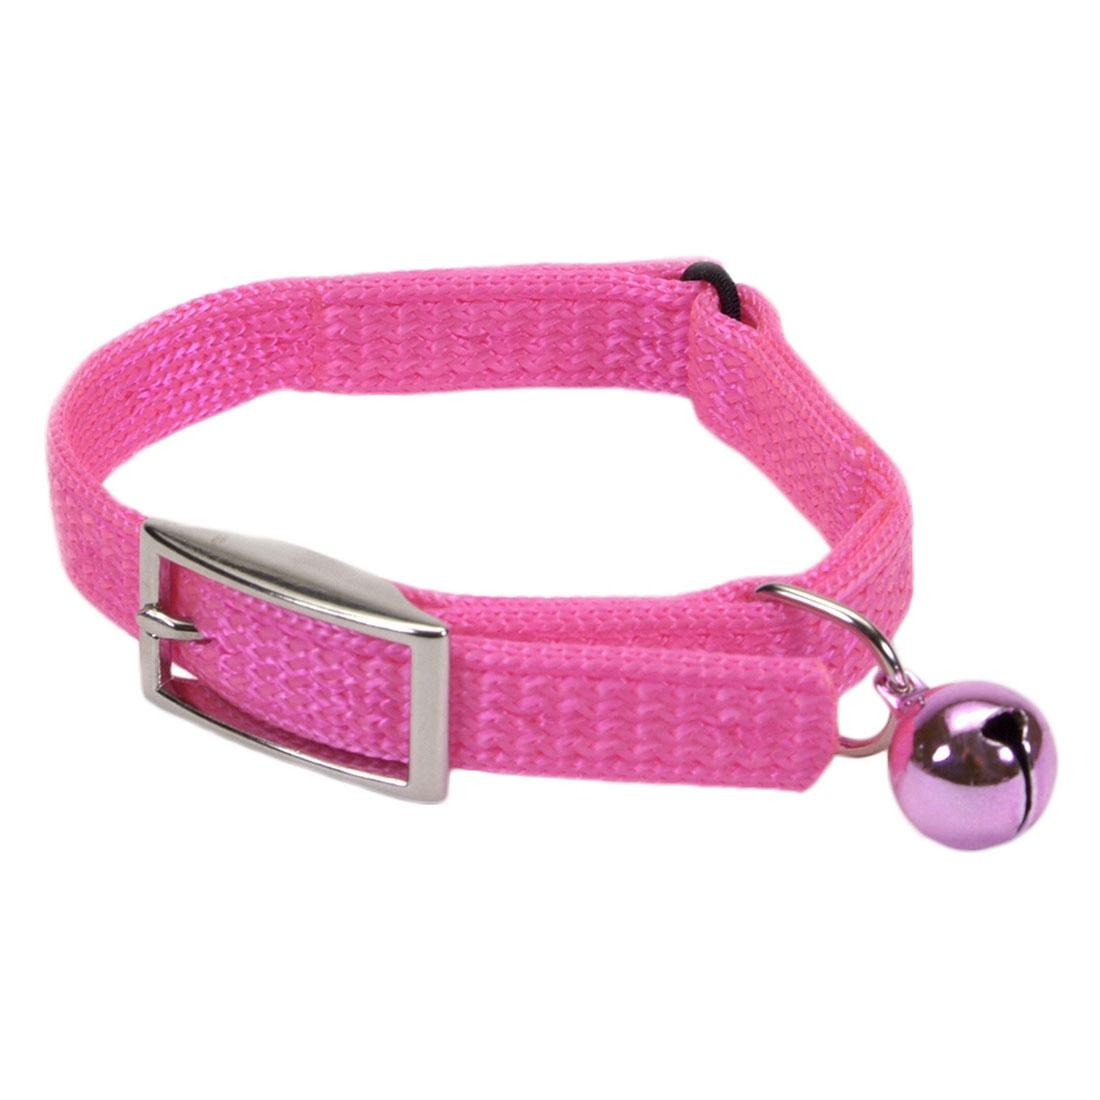 Safe Cat Snag-Proof Safety Cat Collar, Neon Pink Image